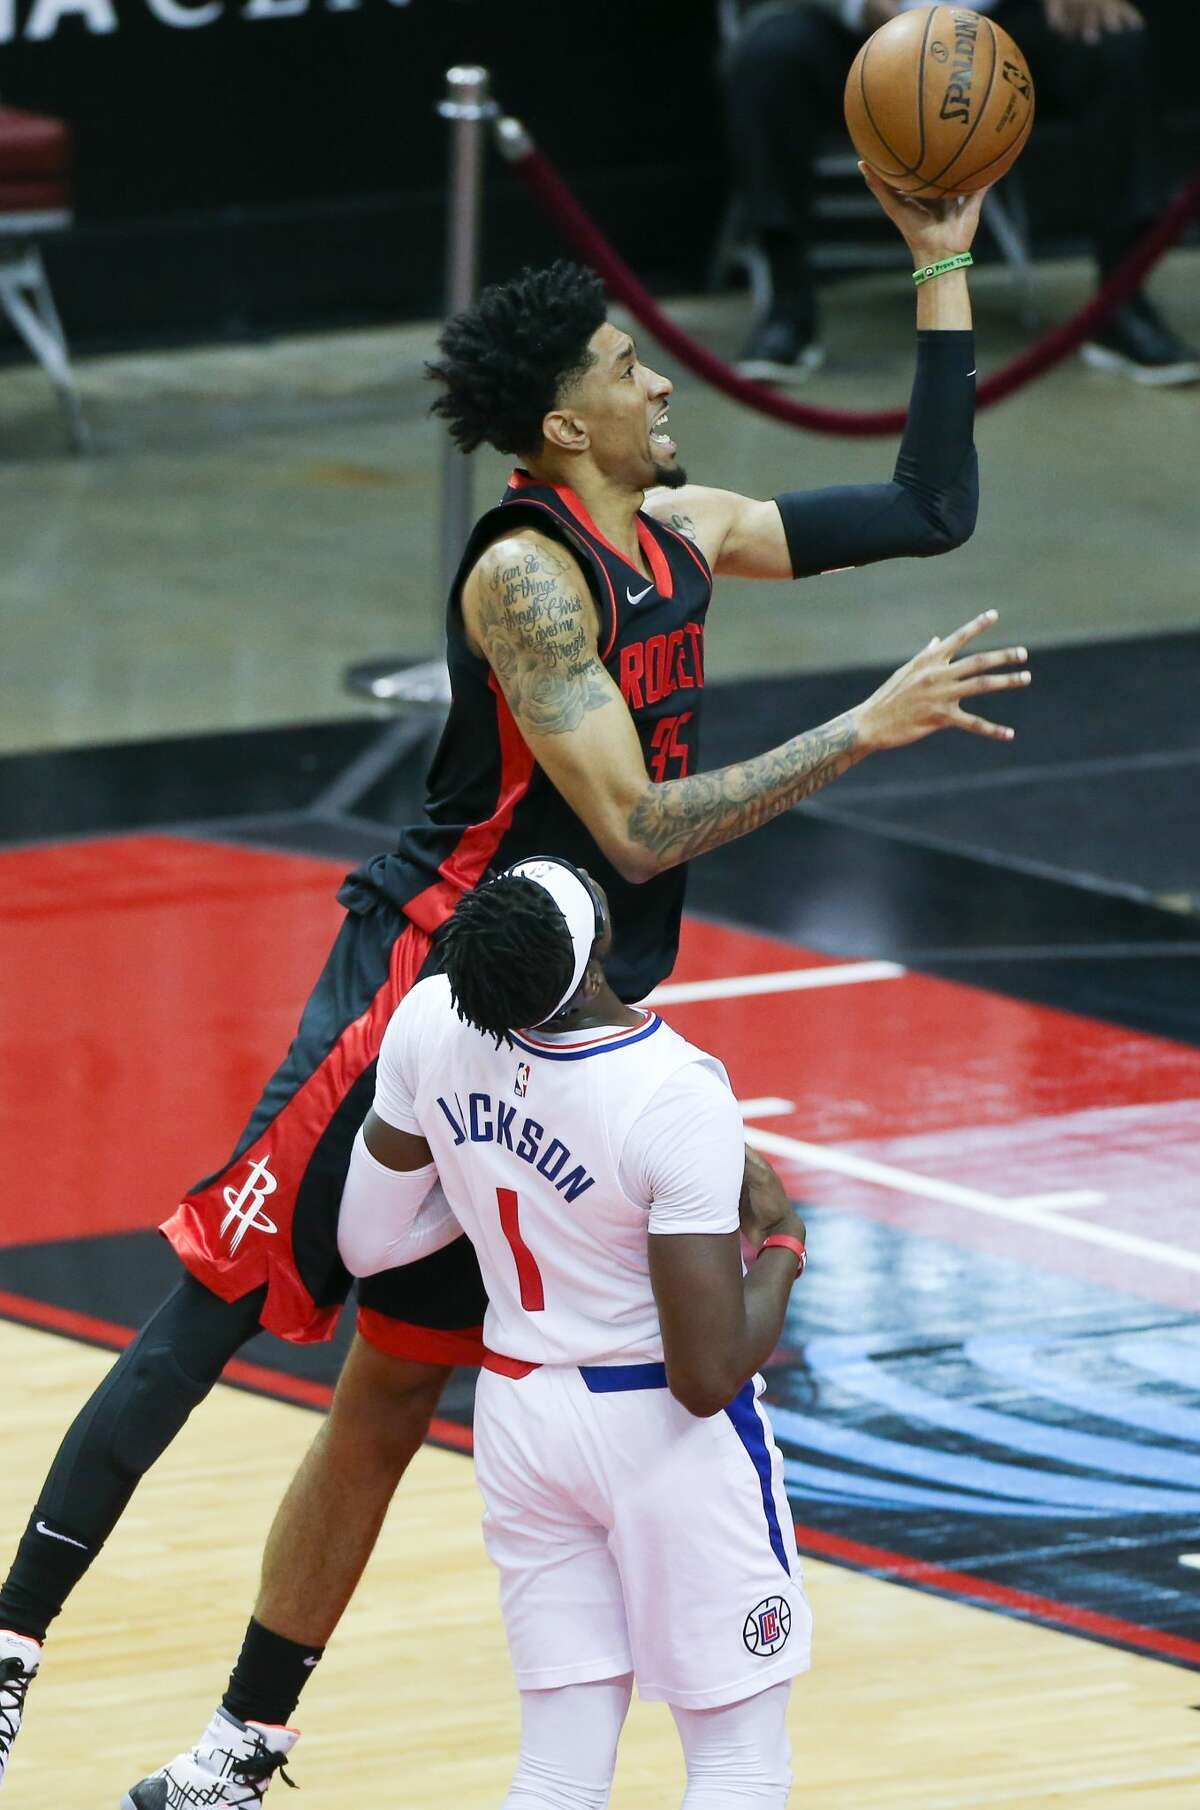 Houston Rockets center Christian Wood (35) goes up for a layup over LA Clippers guard Reggie Jackson (1) in the first half at the Toyota Center in Houston on Friday, April 23, 2021.